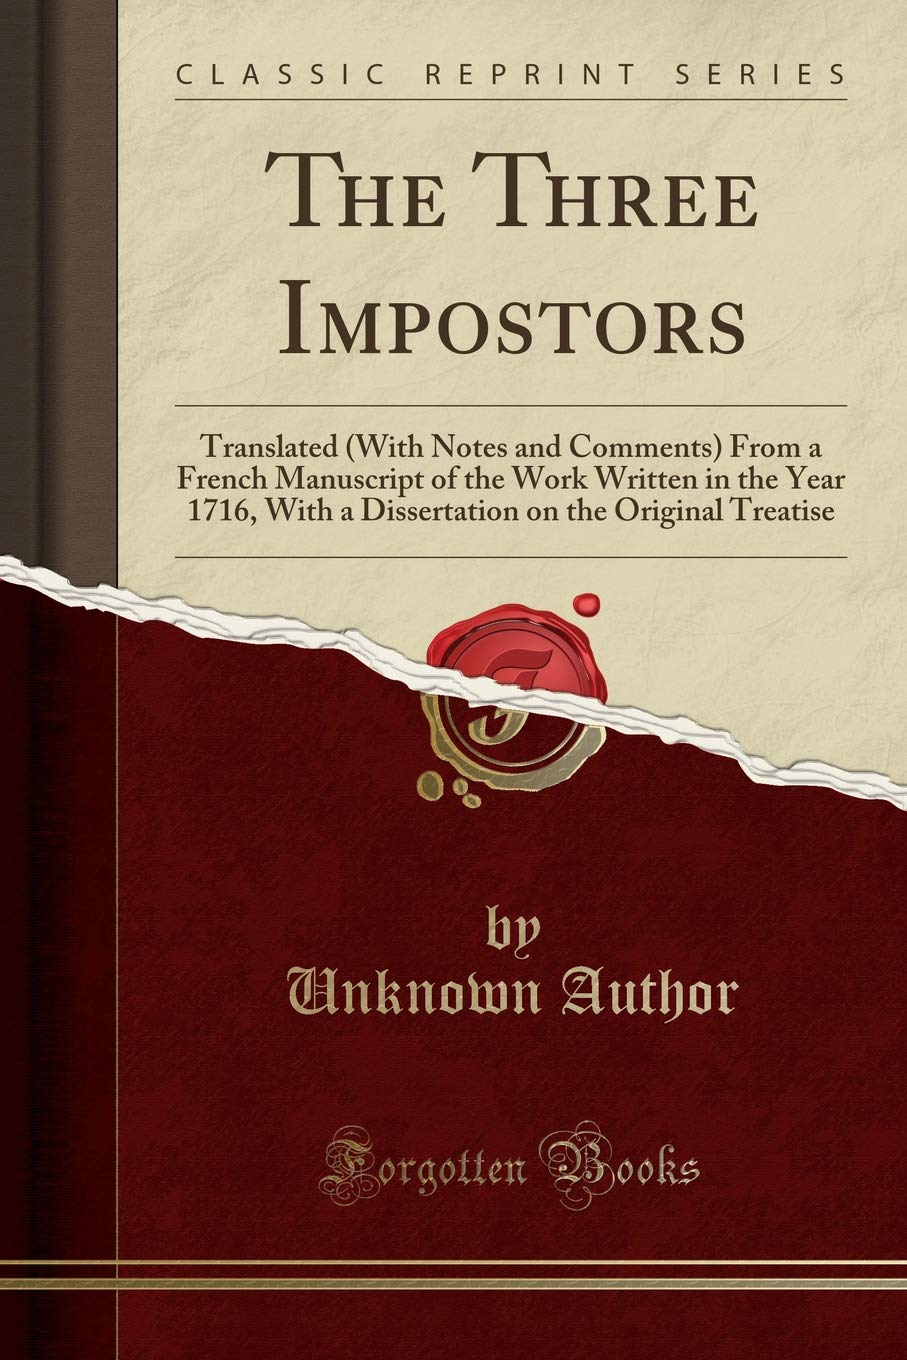 The Three Impostors: Translated (With Notes and Comments) From a French Manuscript of the Work Written in the Year 1716, With a Dissertation on the Original Treatise (Classic Reprint) pdf epub